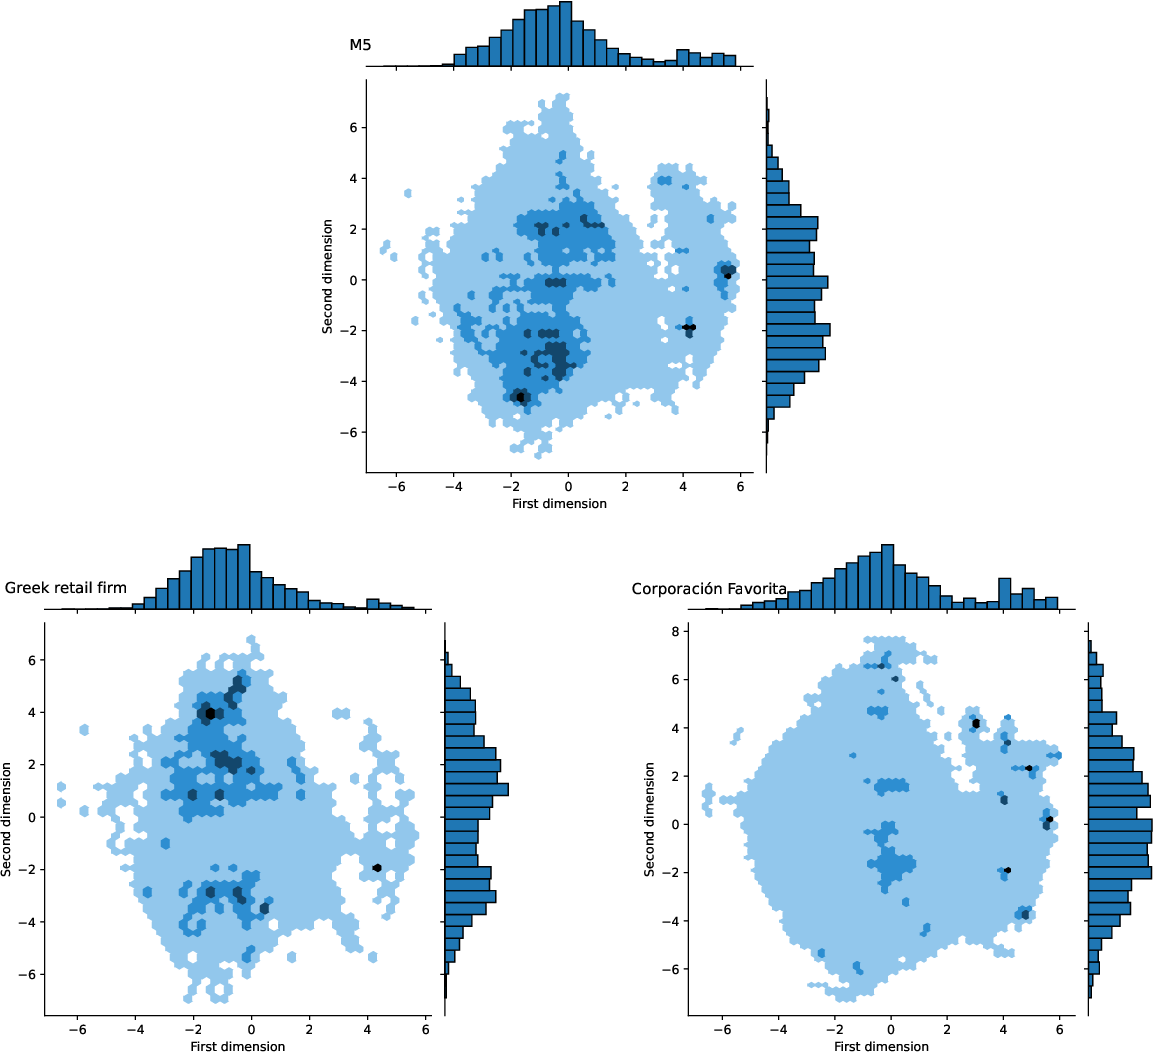 Figure 3 for Exploring the representativeness of the M5 competition data